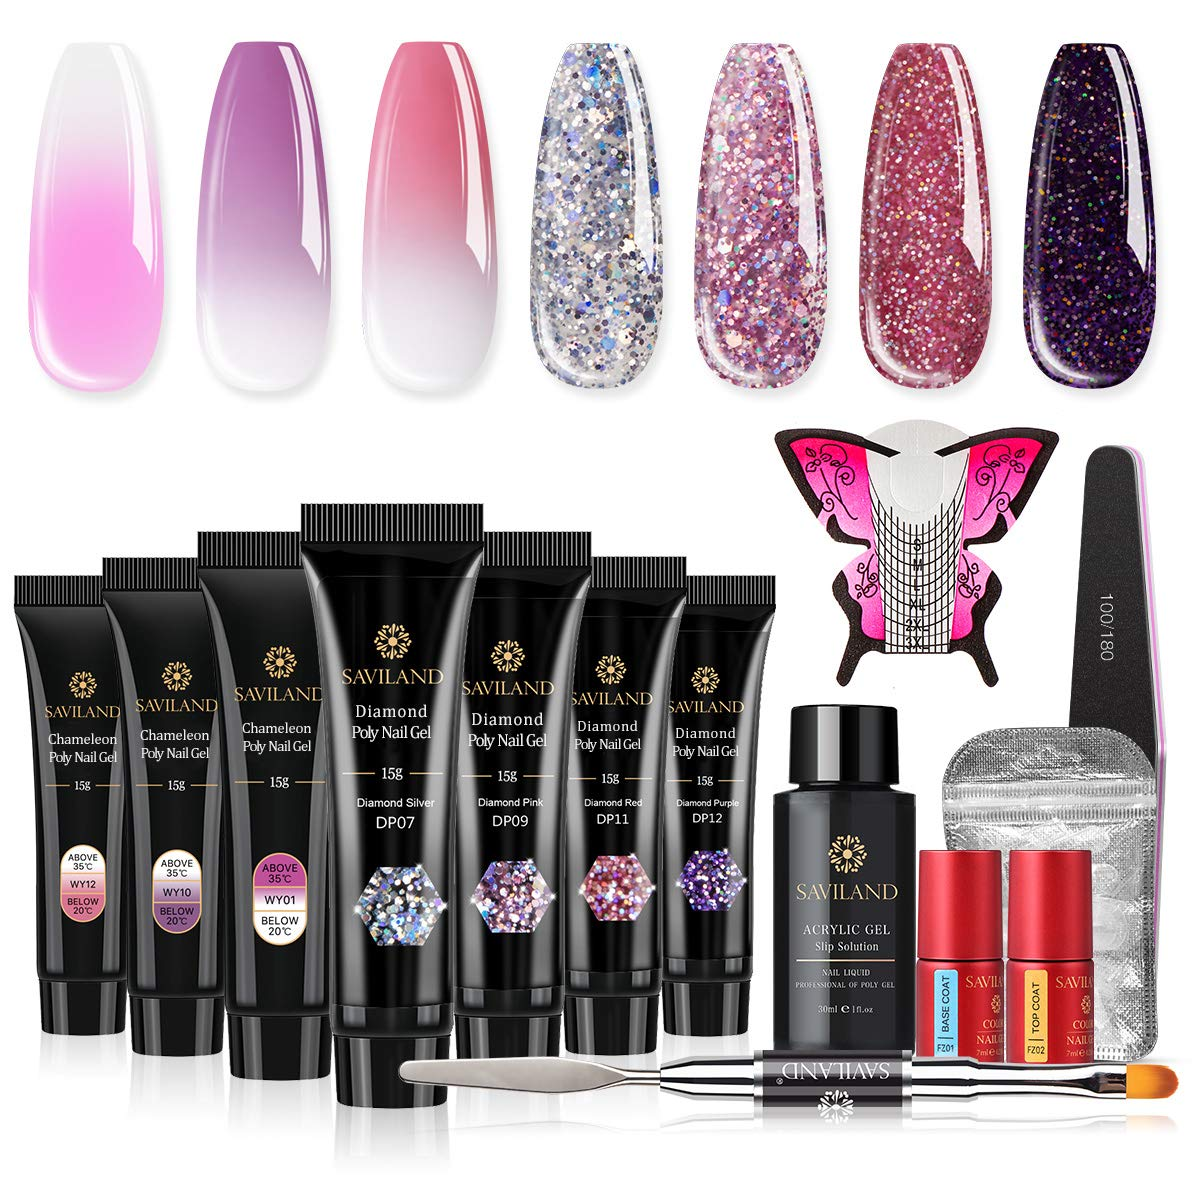 Saviland Poly Nail Gel Kit - Glitter and Color Changing Poly Nail Gel 7 Colors Extension Gel Nail Enhancement Manicure Kit for Gel Polish Starter and Professional Nail Technician